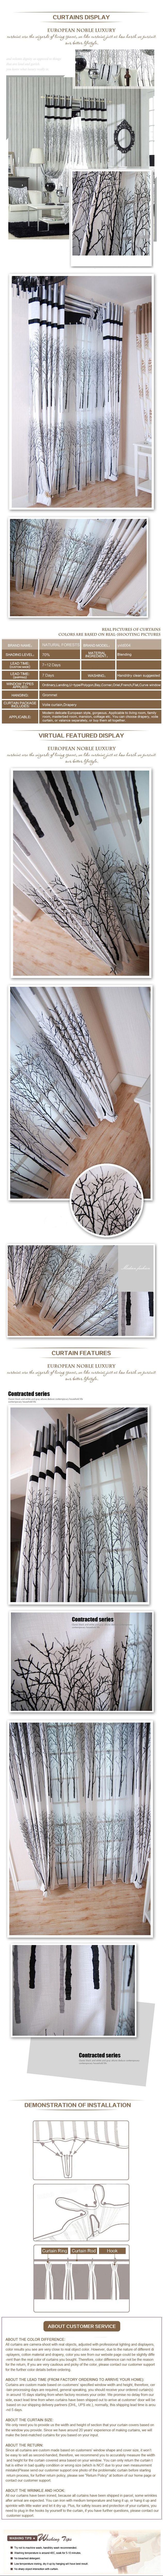 Luxury window curtain - Natural Forest $100  (60% off)